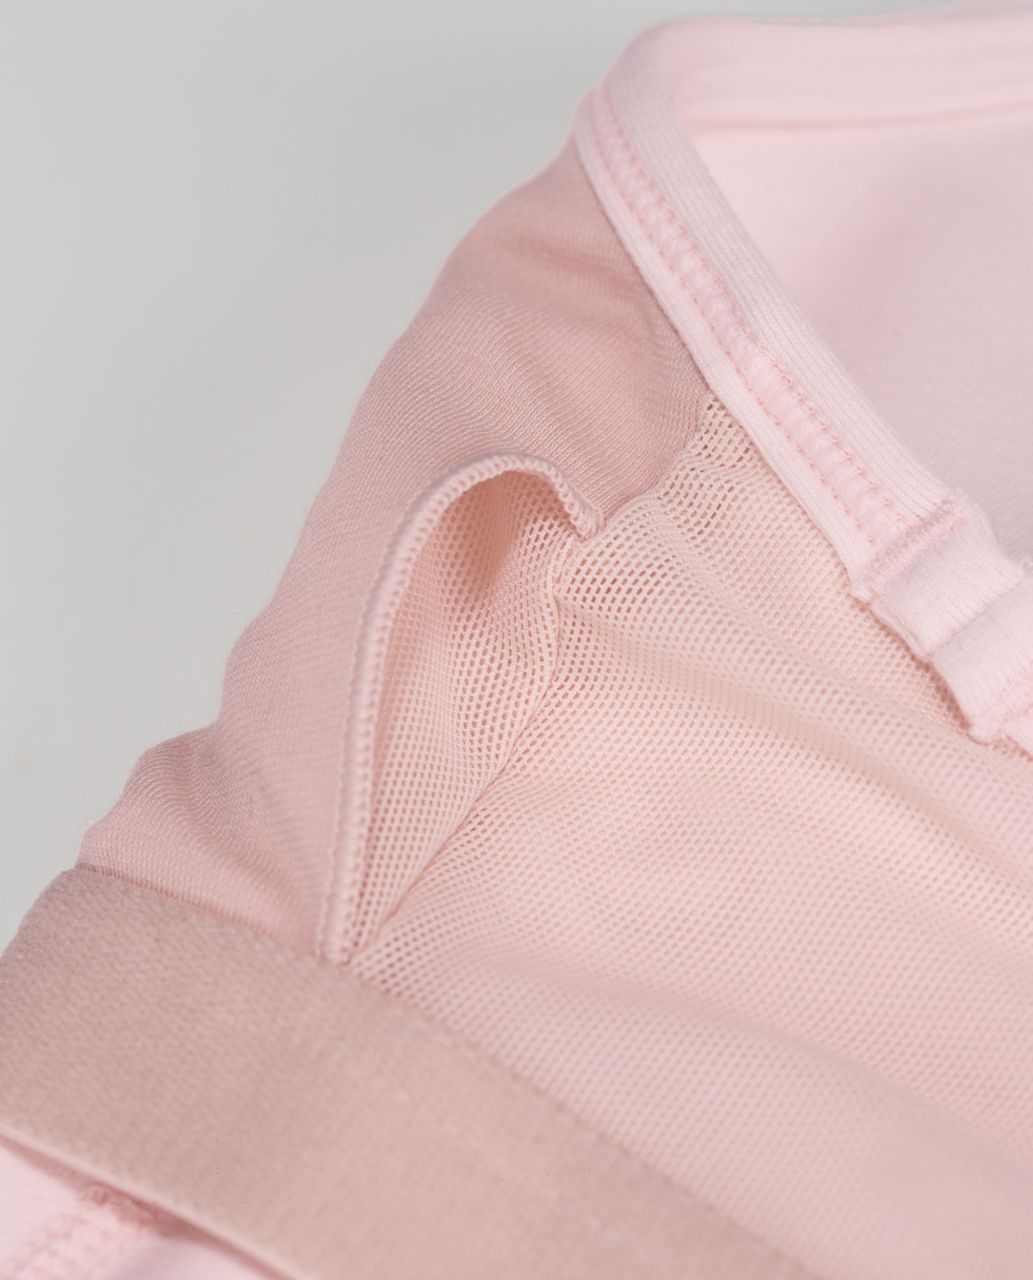 Lululemon Power Y Tank *Luon - Heathered Parfait Pink